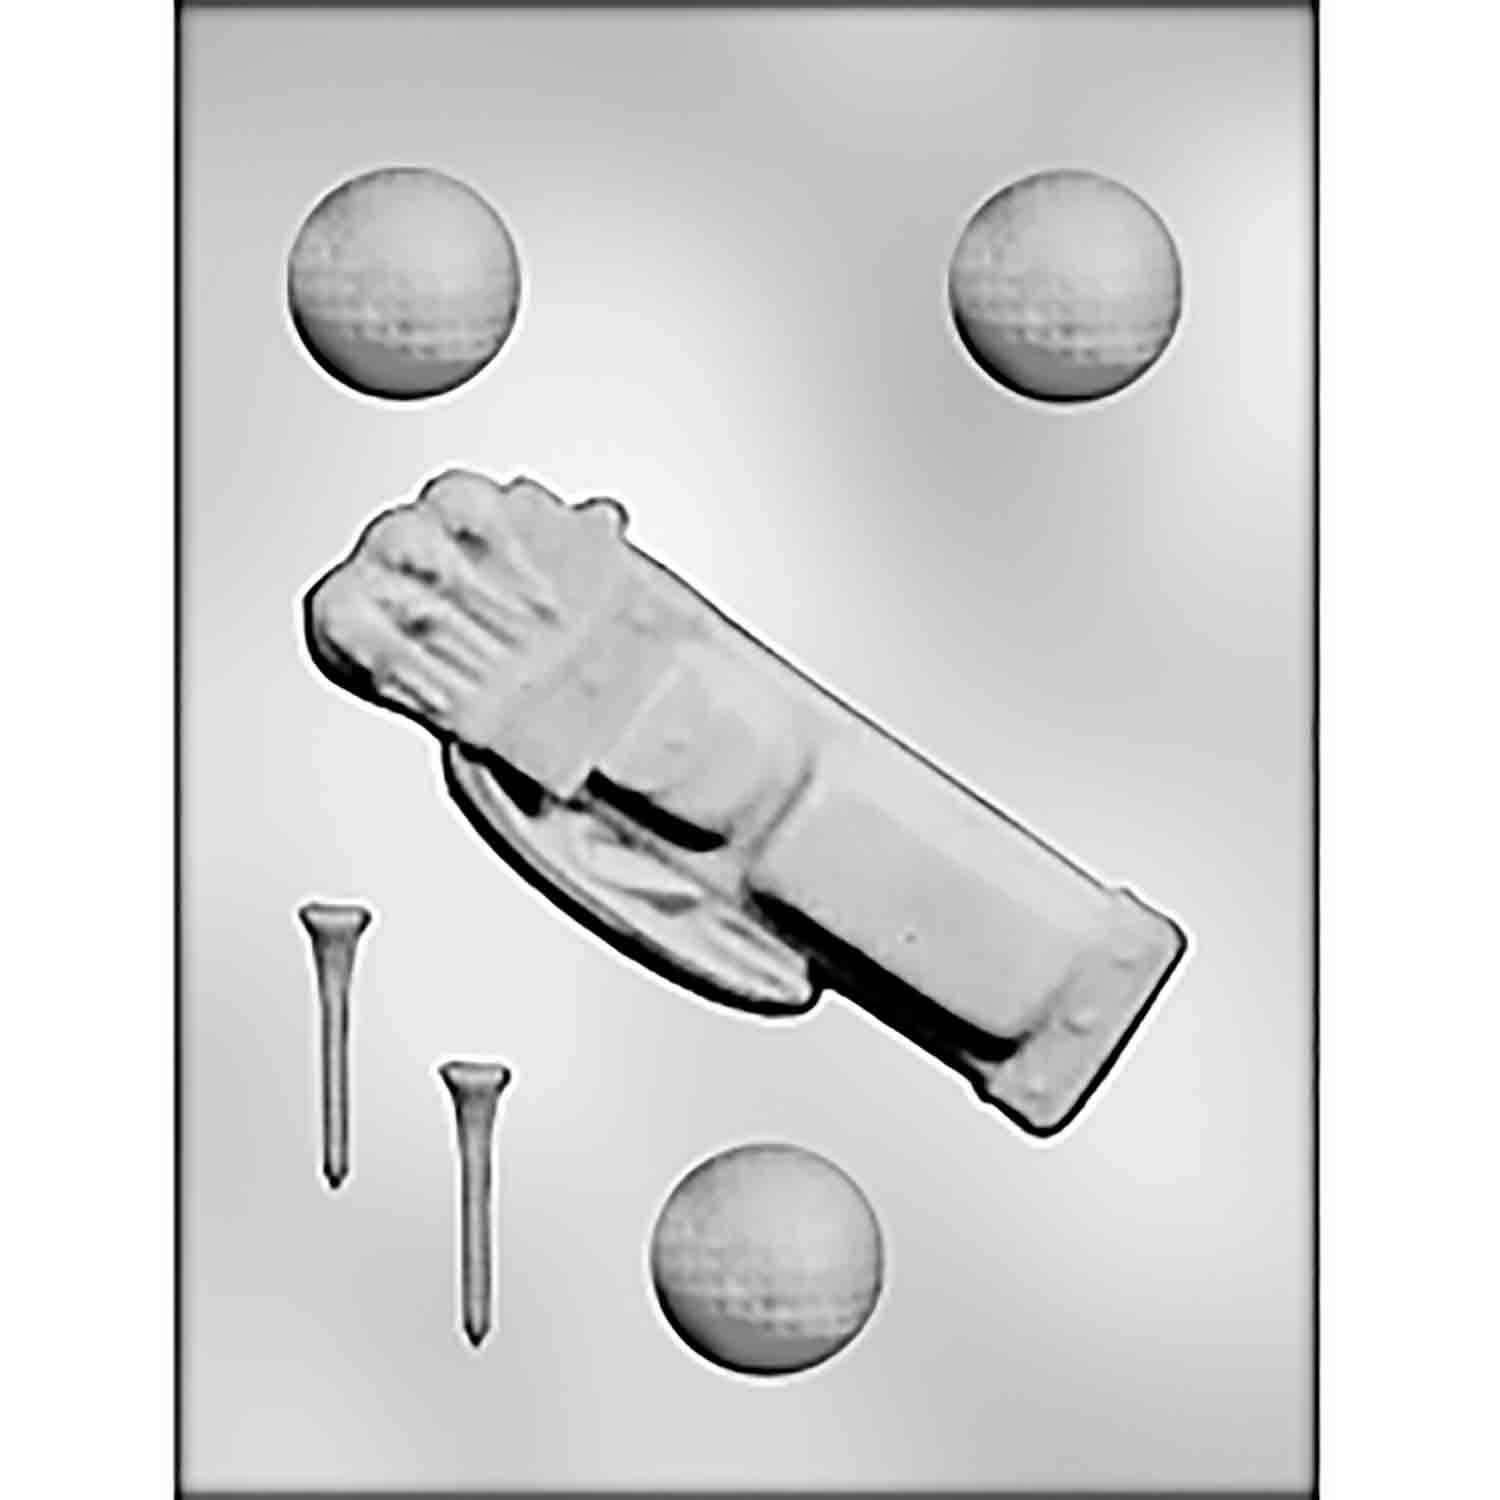 Golf Bag, Tees & Balls Chocolate Candy Mold